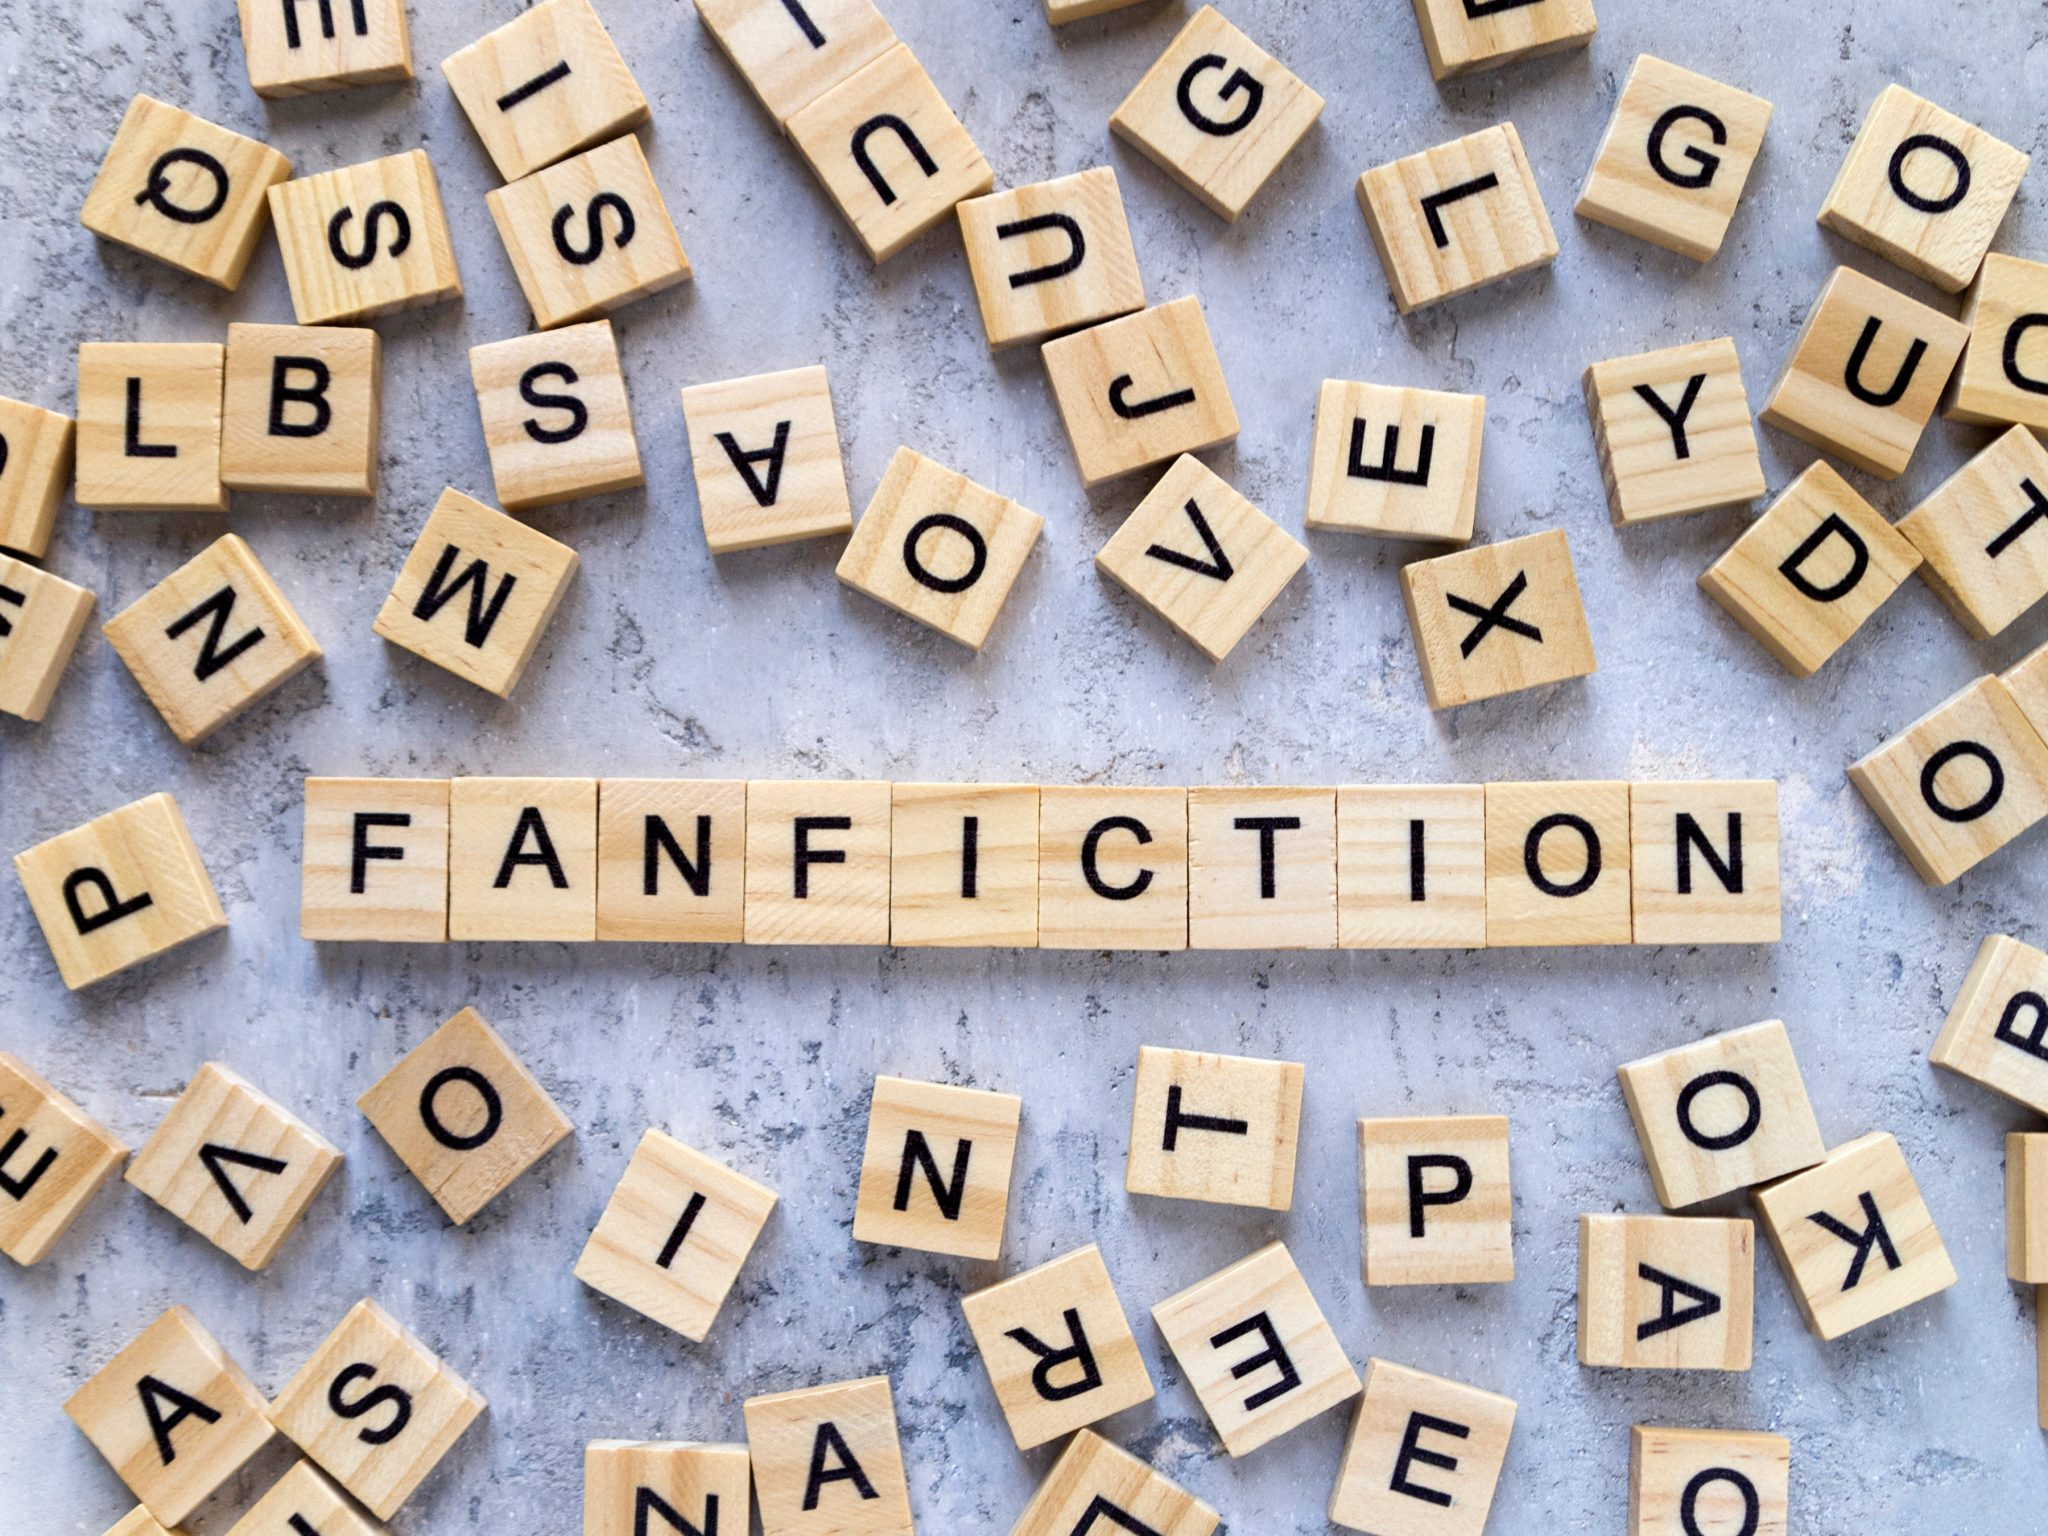 [Guest Post] Erotic Fanfiction as Sexual Exploration by Kelvin Sparks